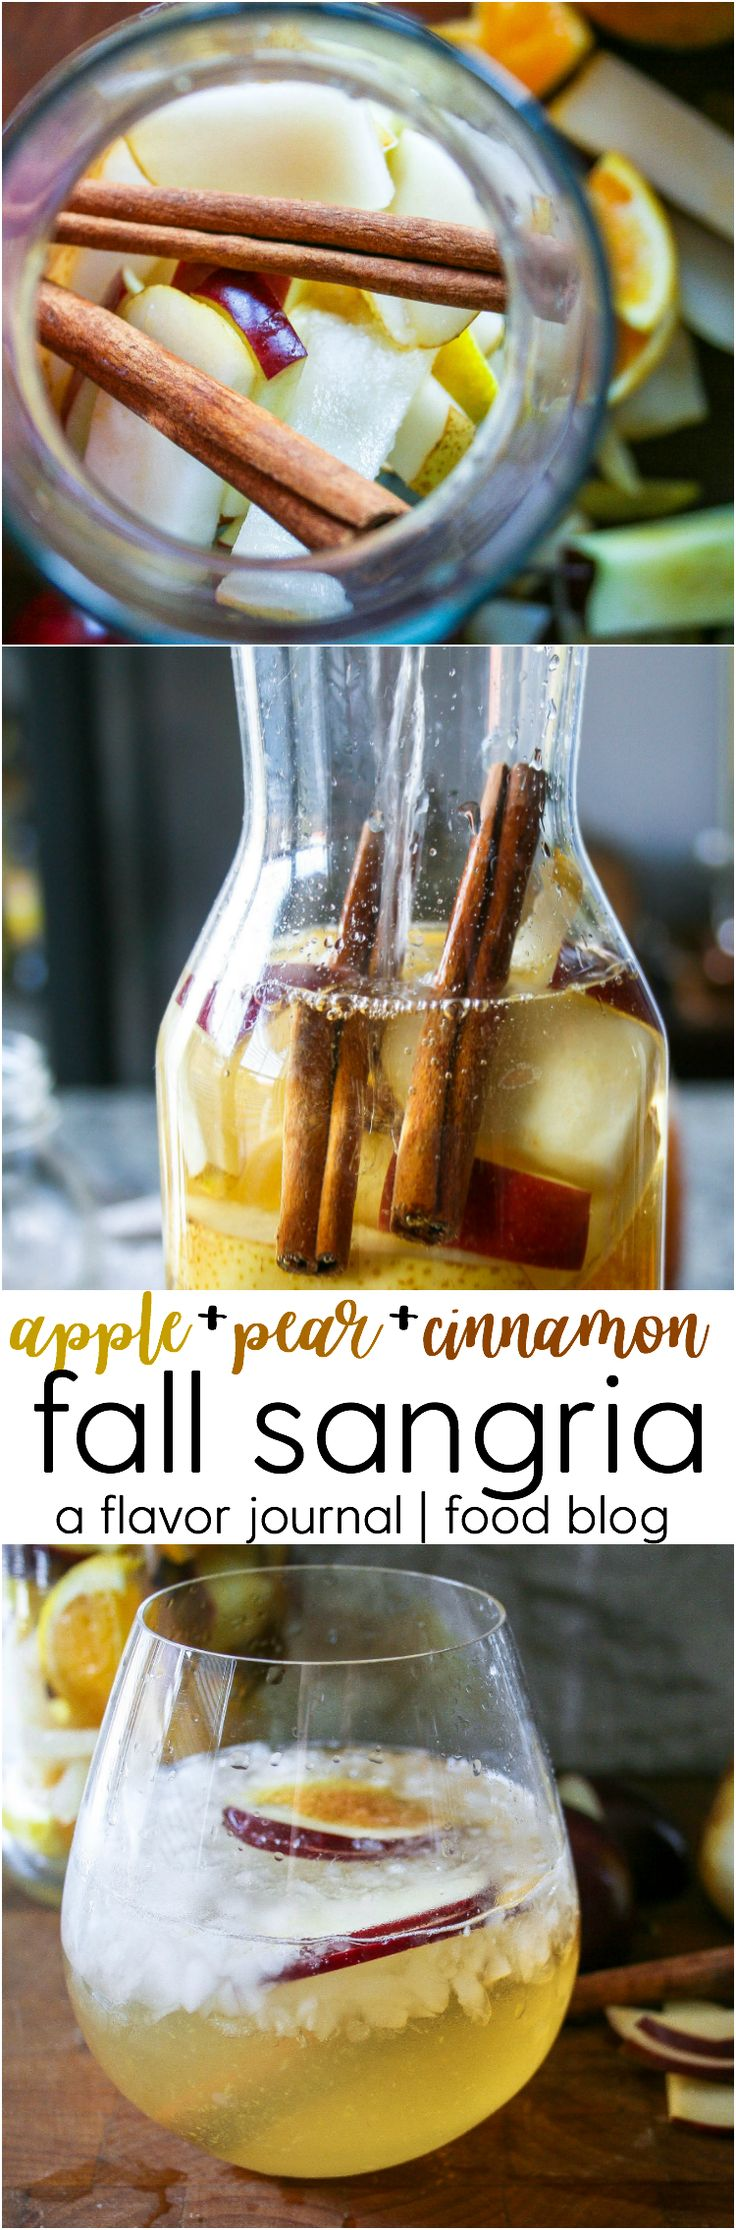 pears, apples, cinnamon, oranges, and honey combine with white wine and apple brandy to create a fruity fall sangria with a hint of warm spice. cheers!   apple + pear + cinnamon fall sangria http://aflavorjournal.com/fall-sangria/